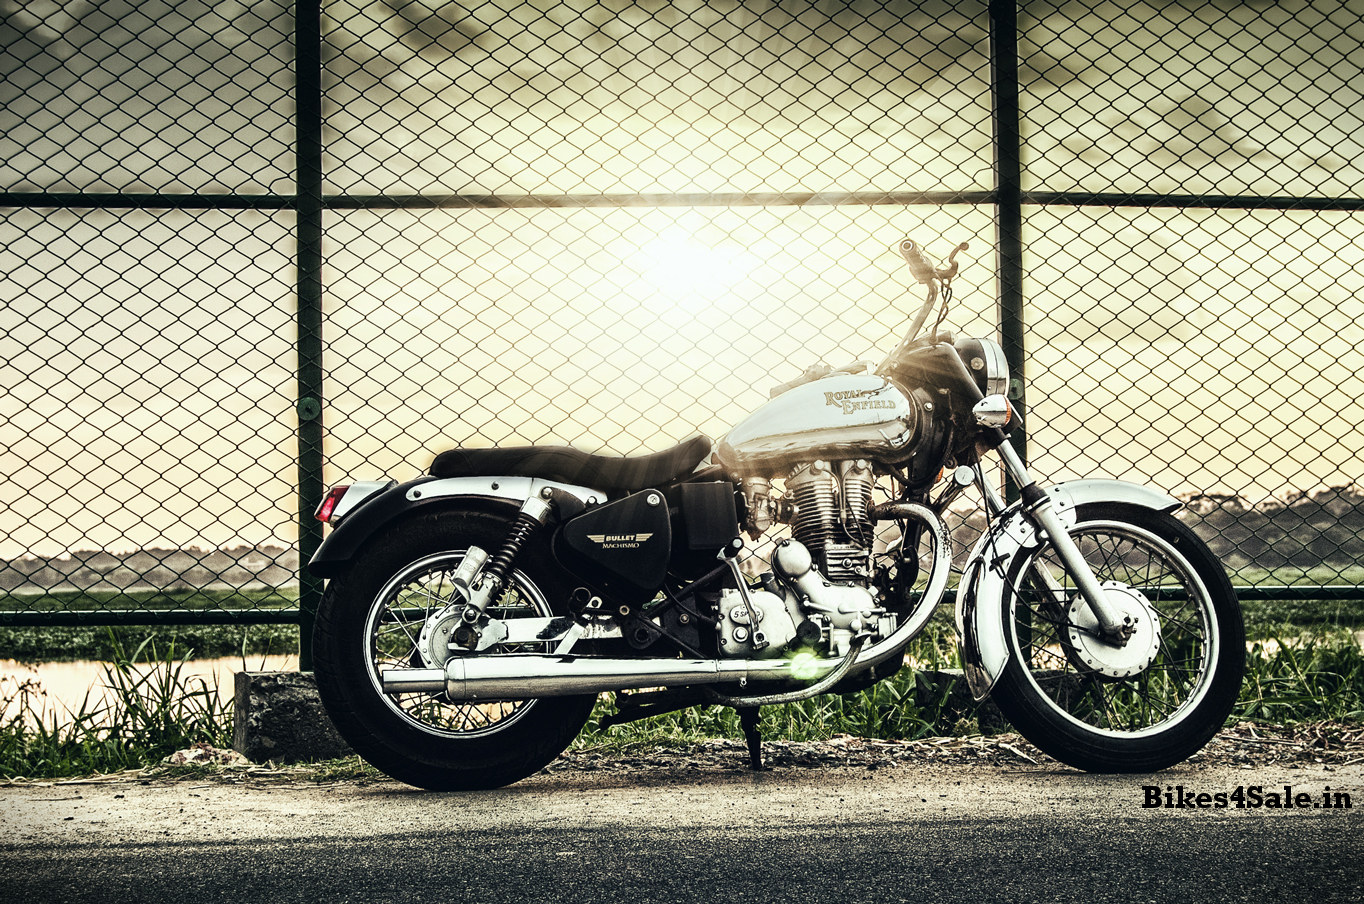 Hd wallpaper royal enfield - Bullet Bike Photos Full Hd Pictures